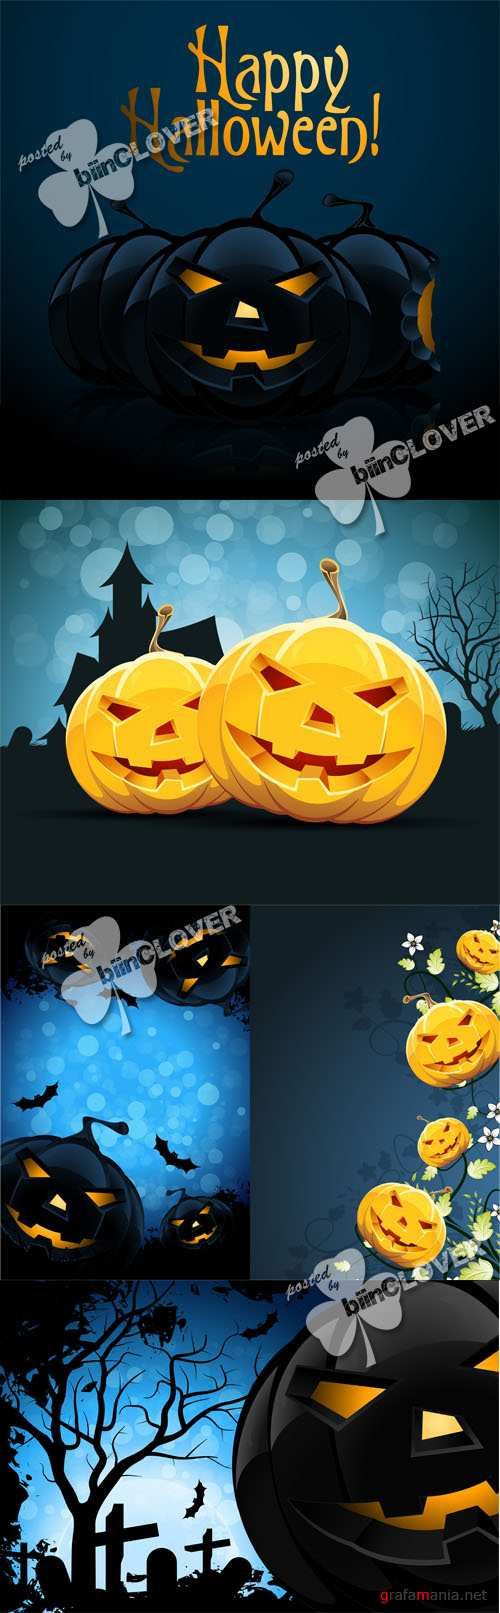 Halloween night cards 0455